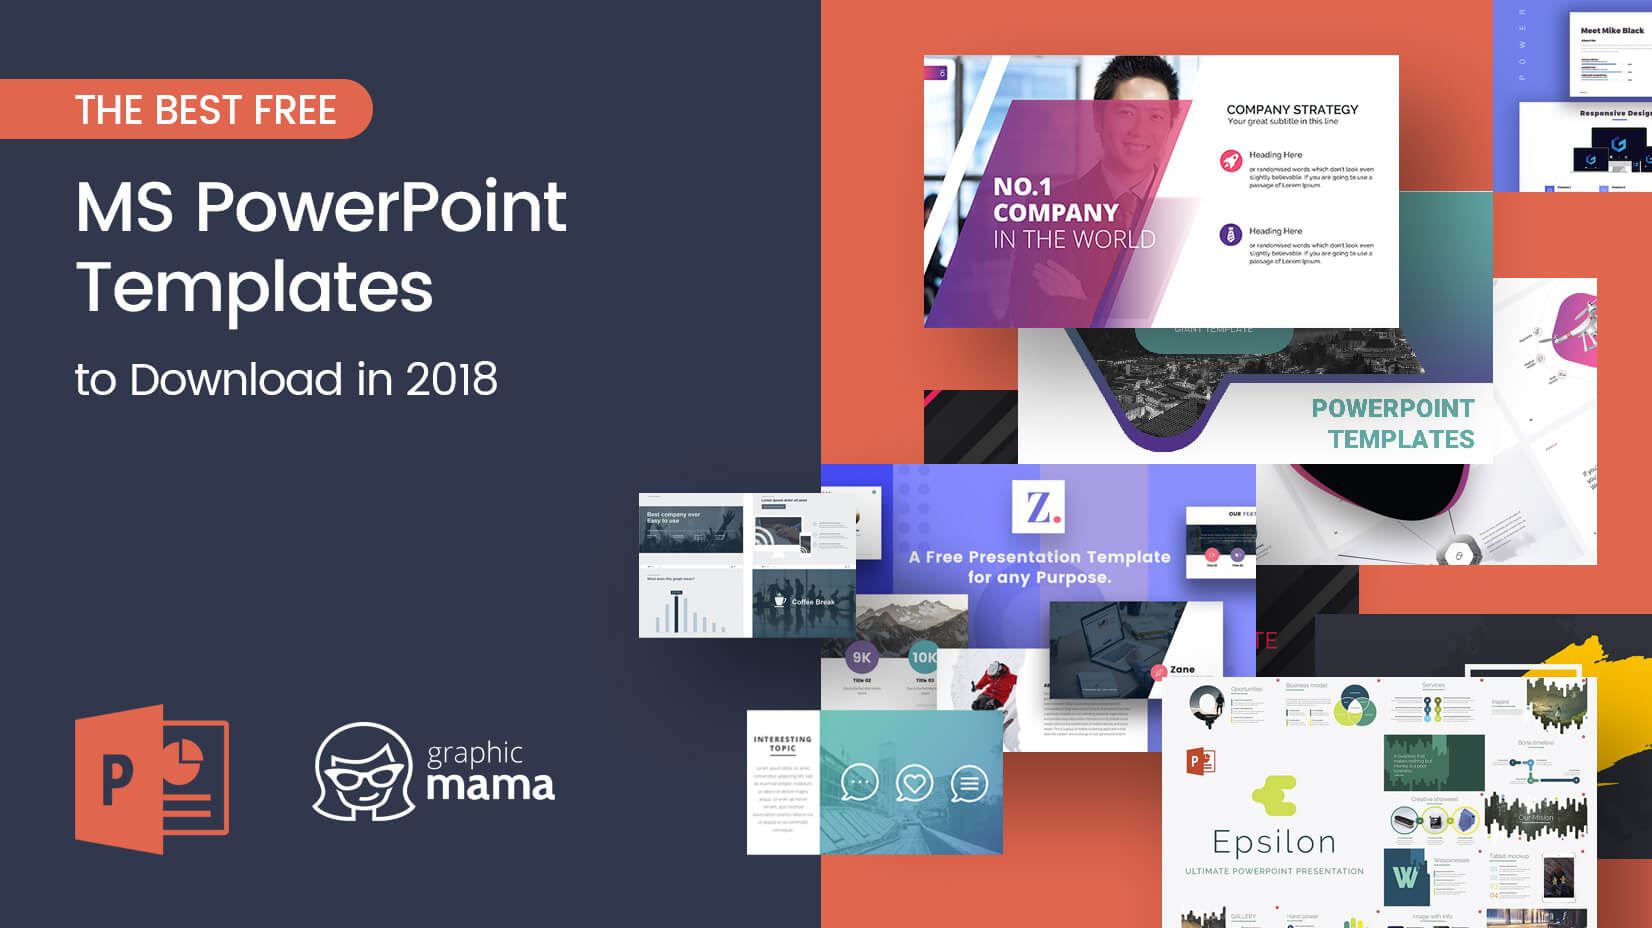 powerpoint presentation templates free download for windows 7